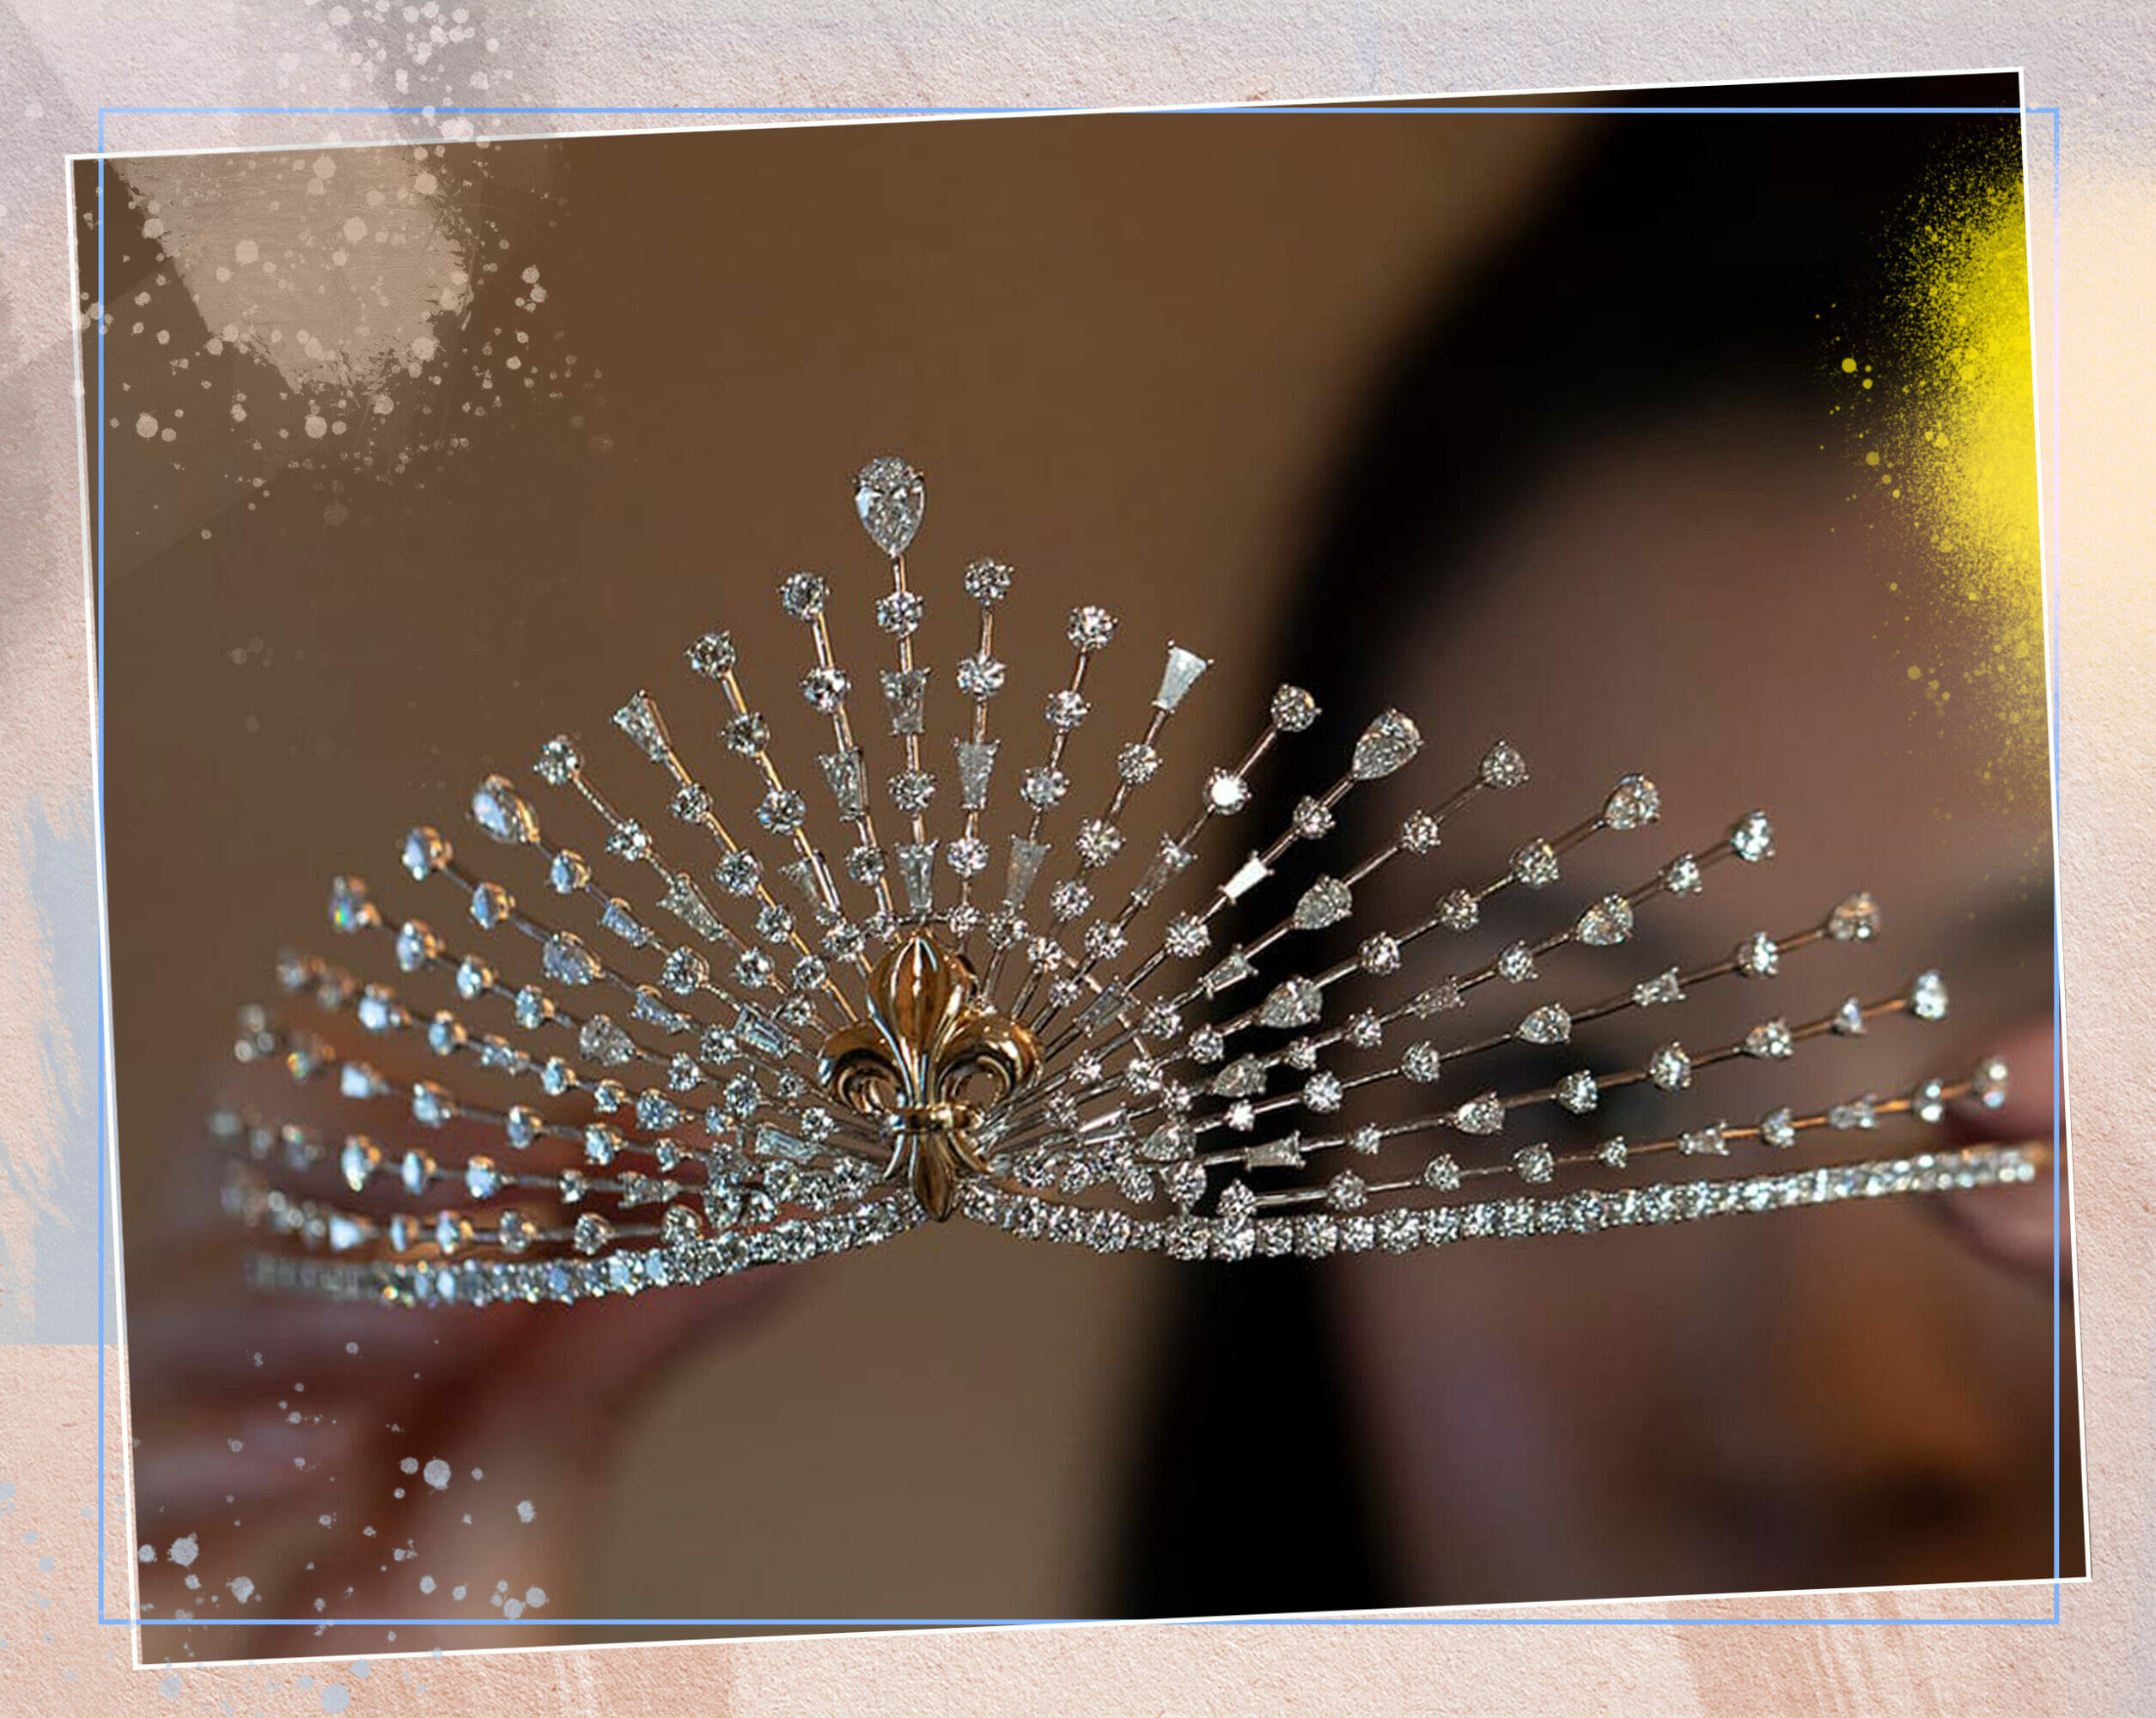 An exquisite natural diamond tiara crafted by Harakh Mehta